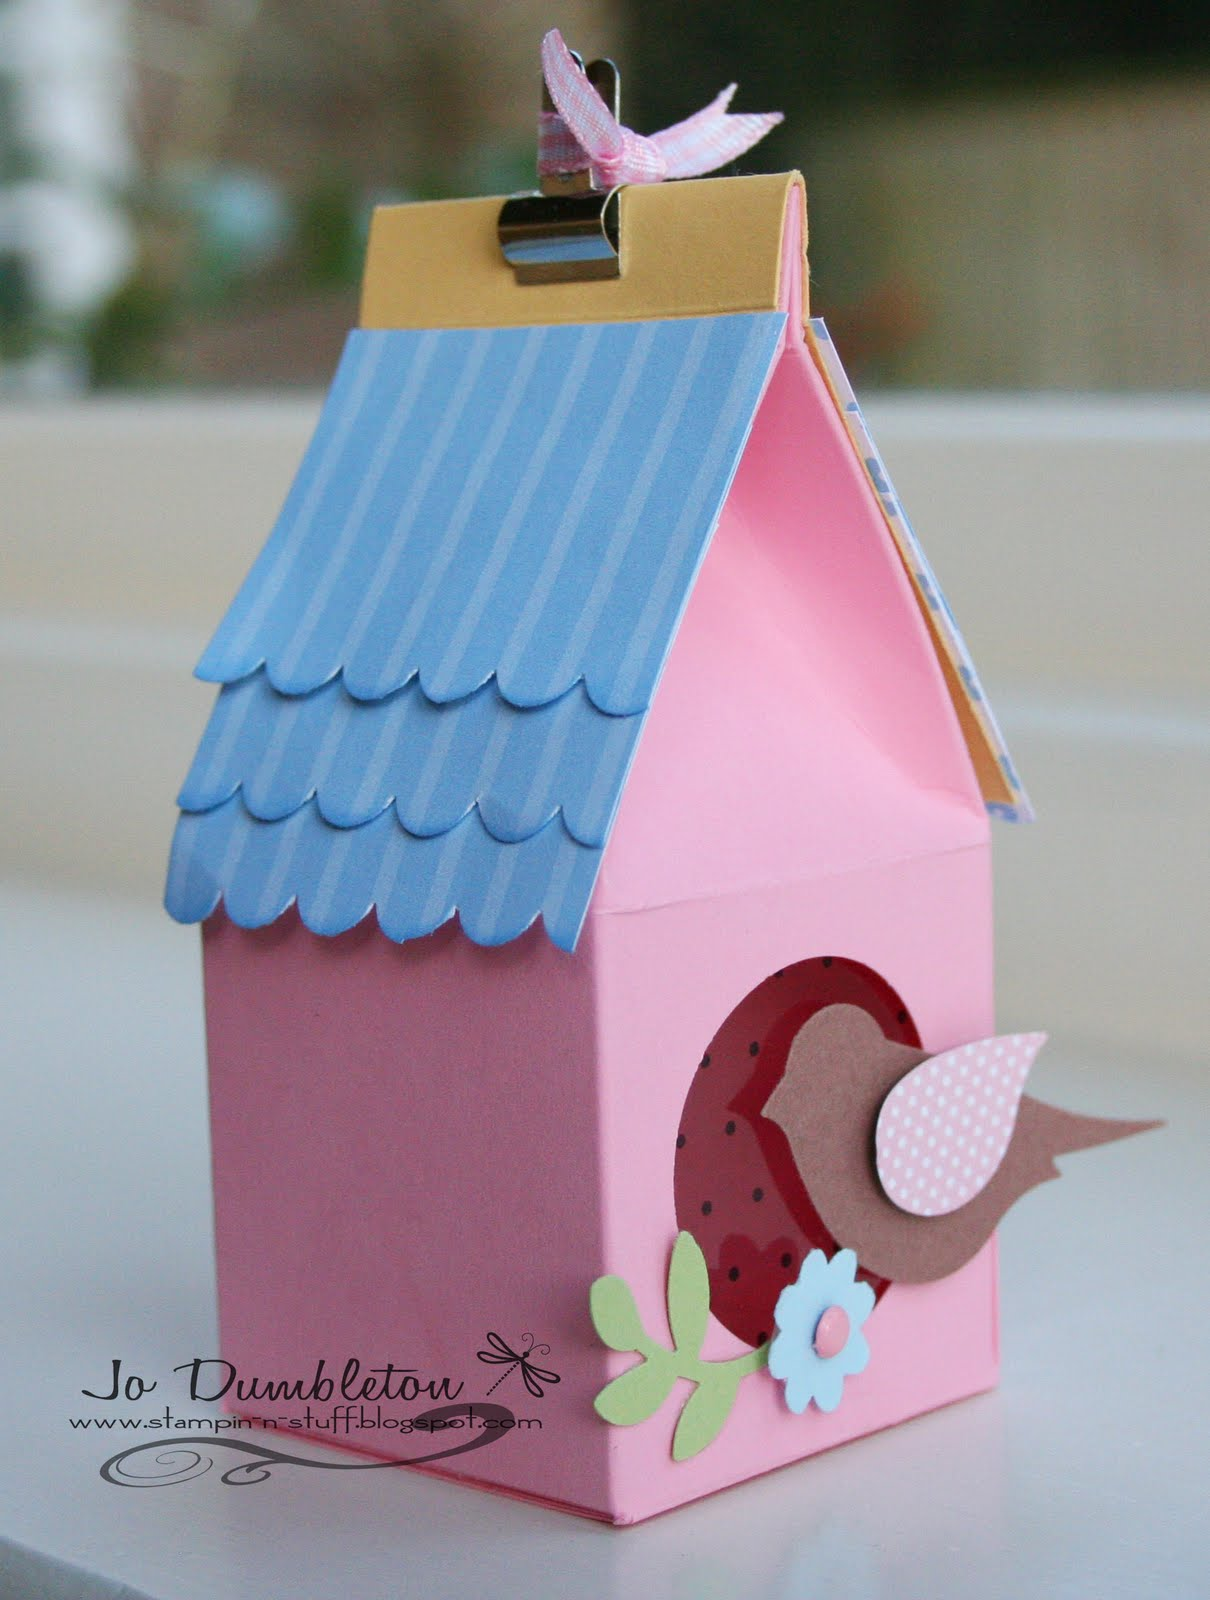 I Realise Its A Bit Late To Make For Easter But It Is Pretty Cute And Be Honest Can Used Any Time Of Year As Gift